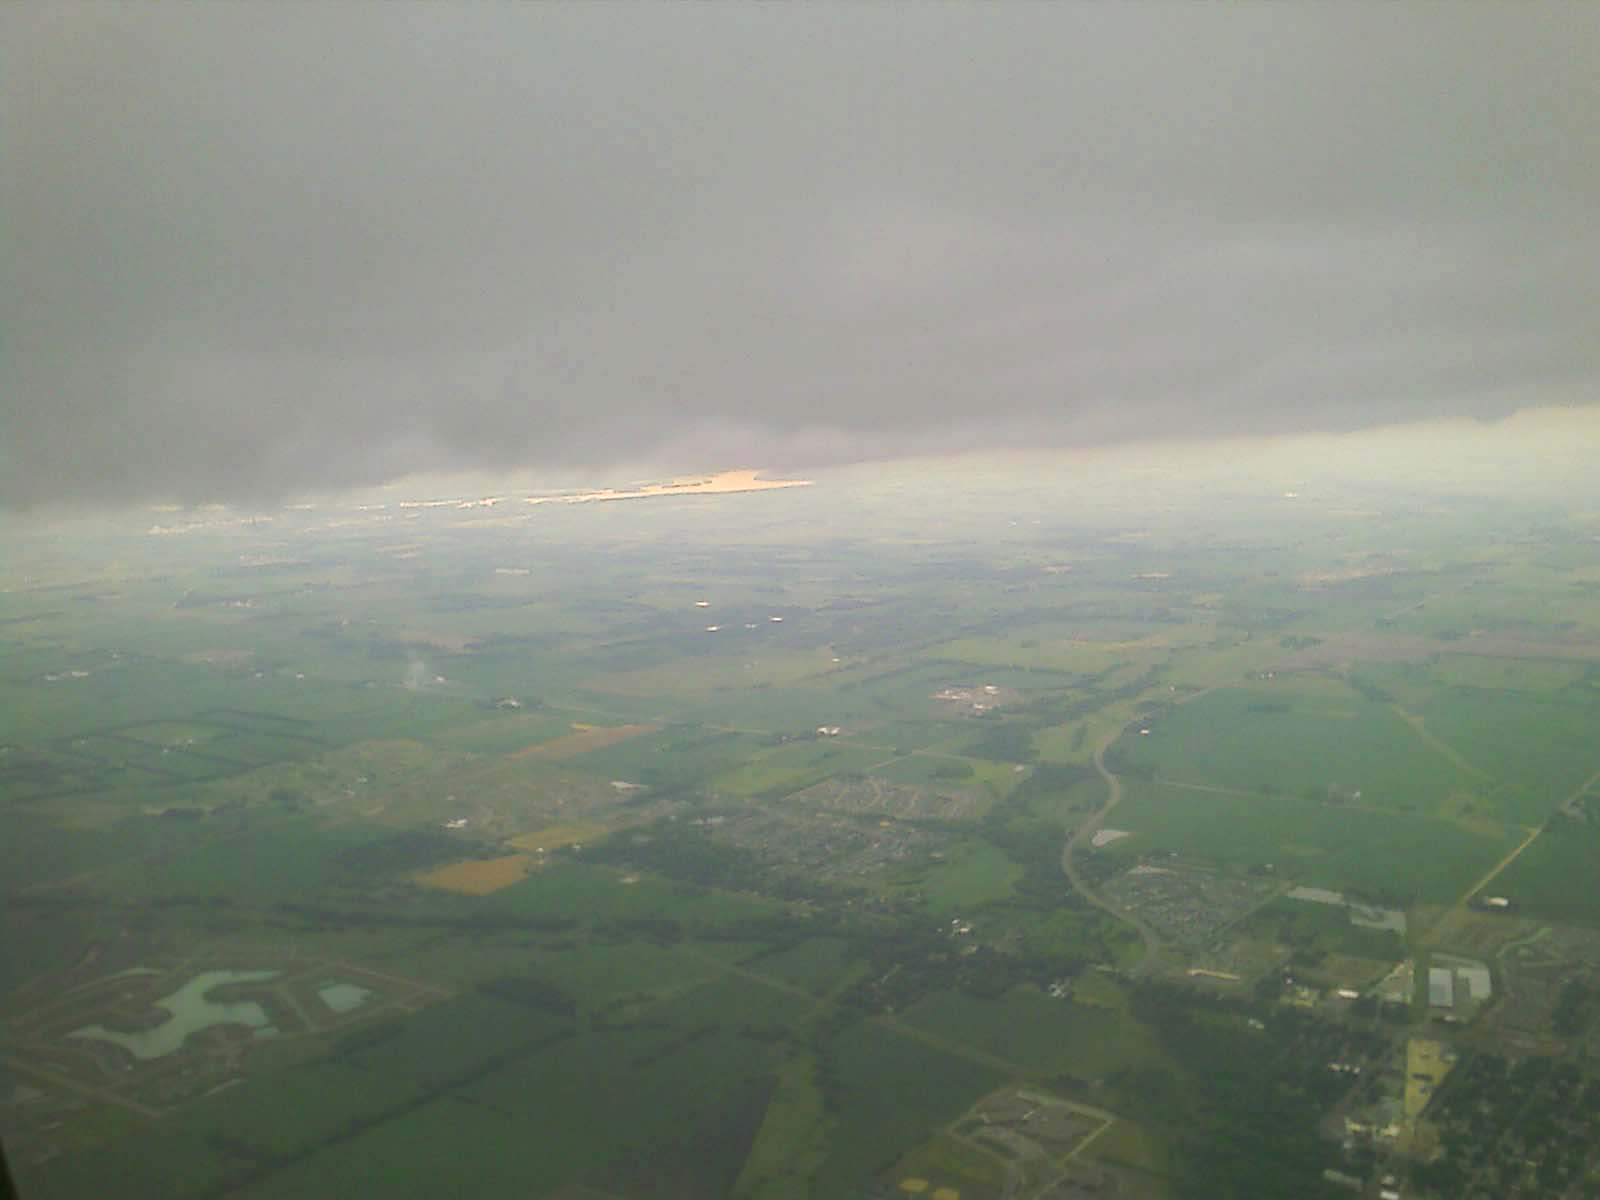 Another view of morning clouds from the air just before landing